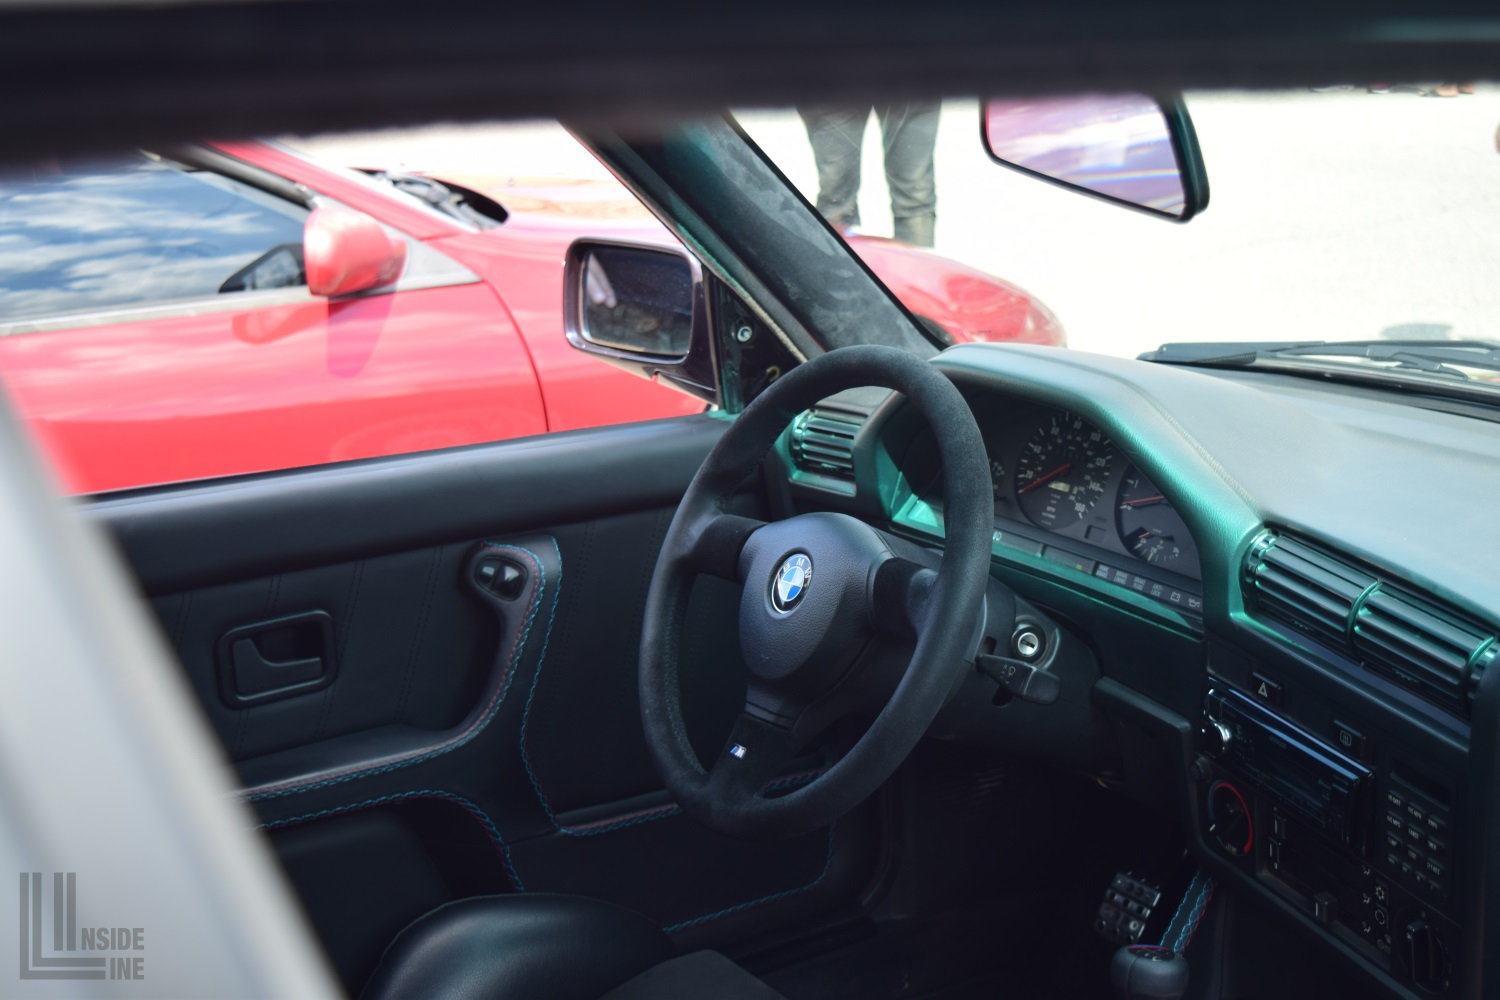 https://insidelineauto.com/wp-content/uploads/2017/12/bmw-m3-e30-interior-engineered-automotive.jpg